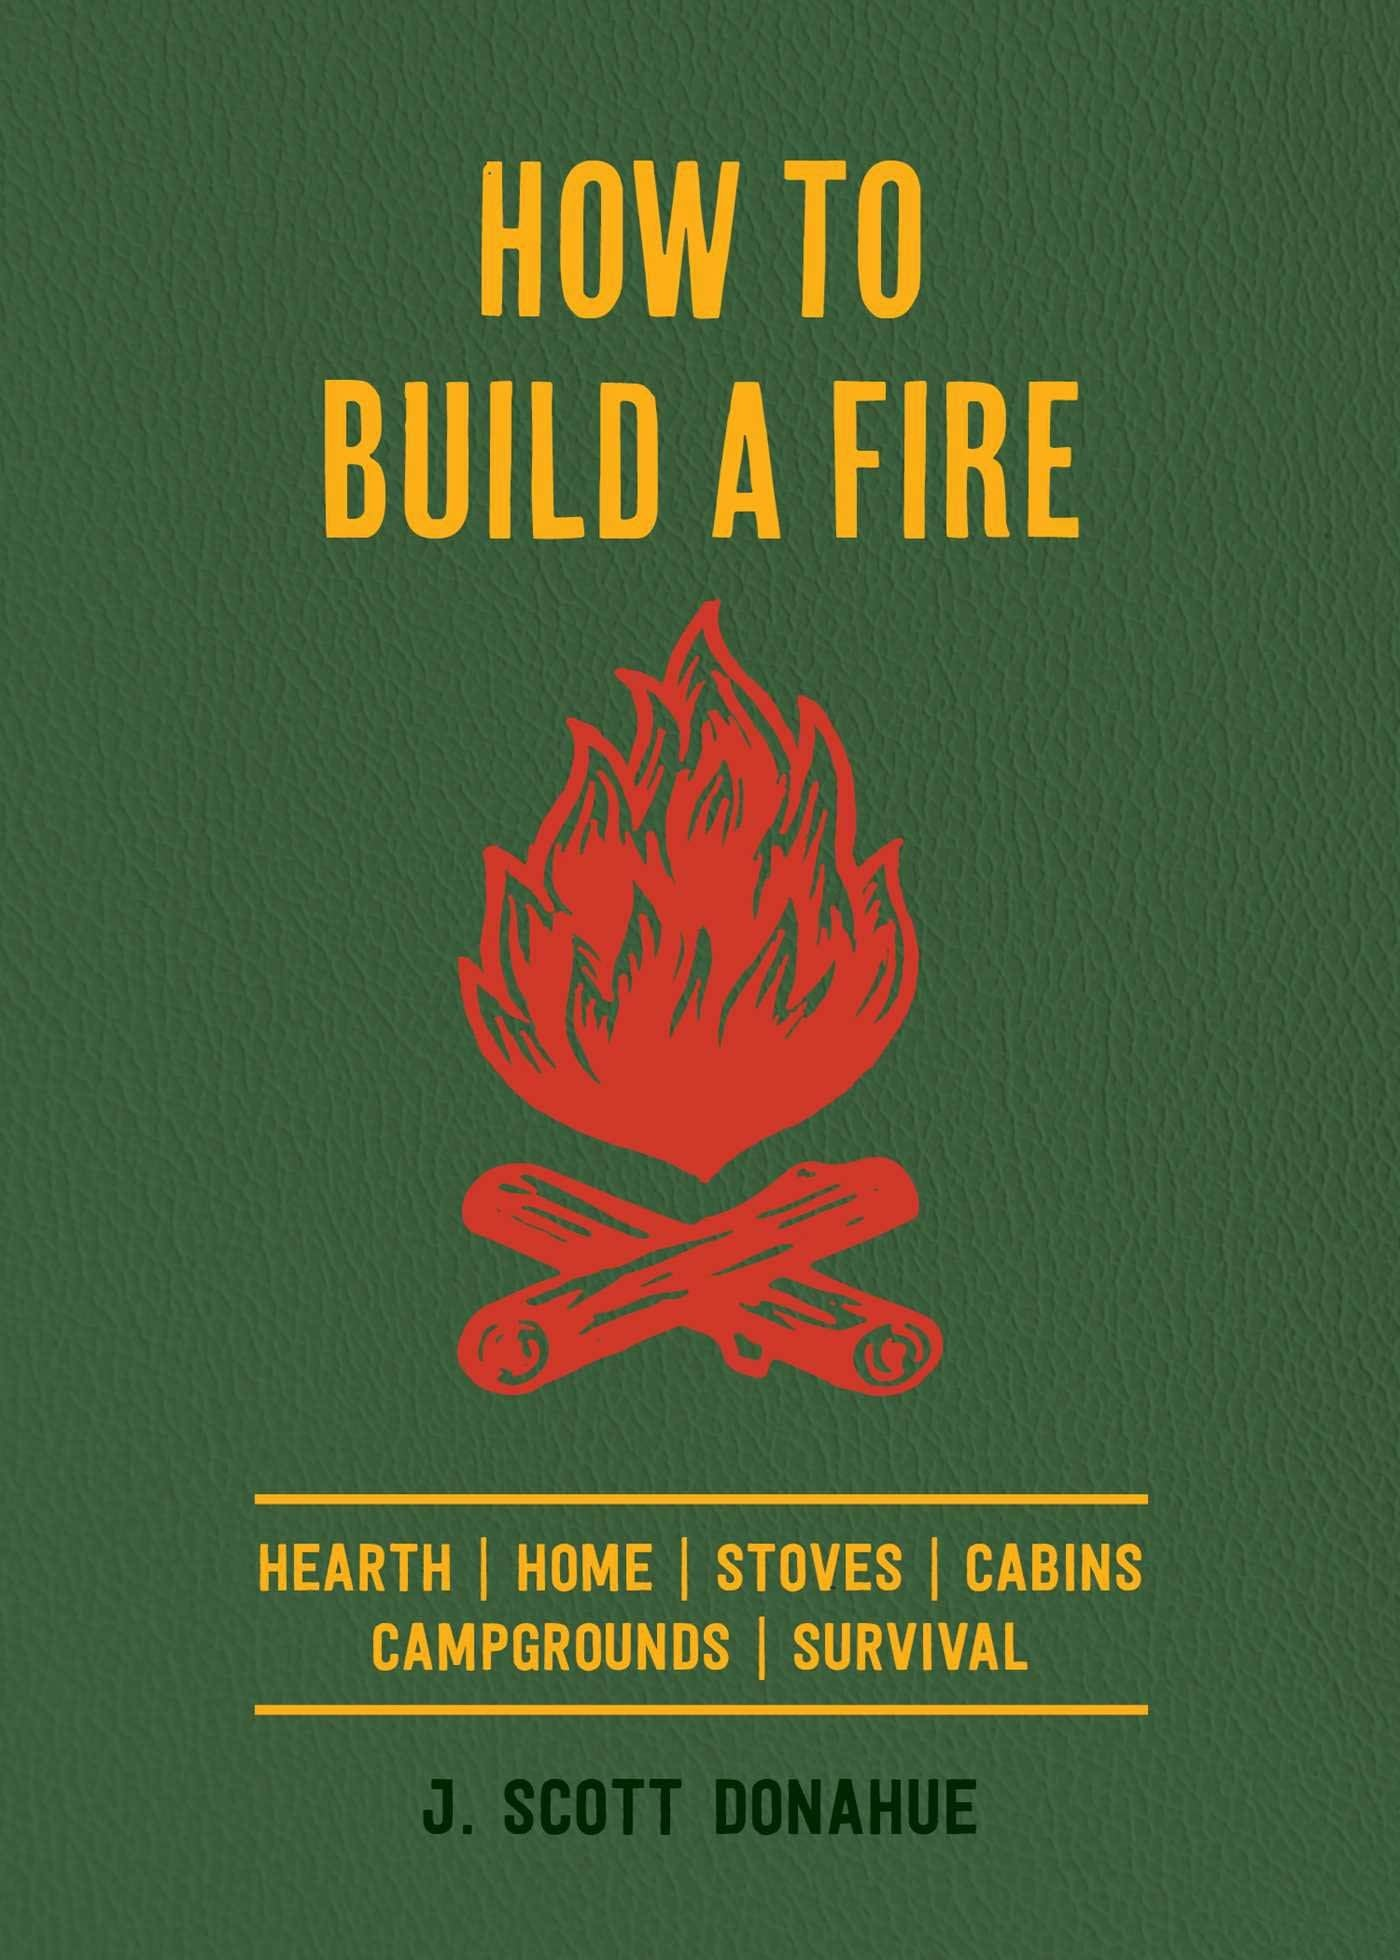 How to Build a Fire